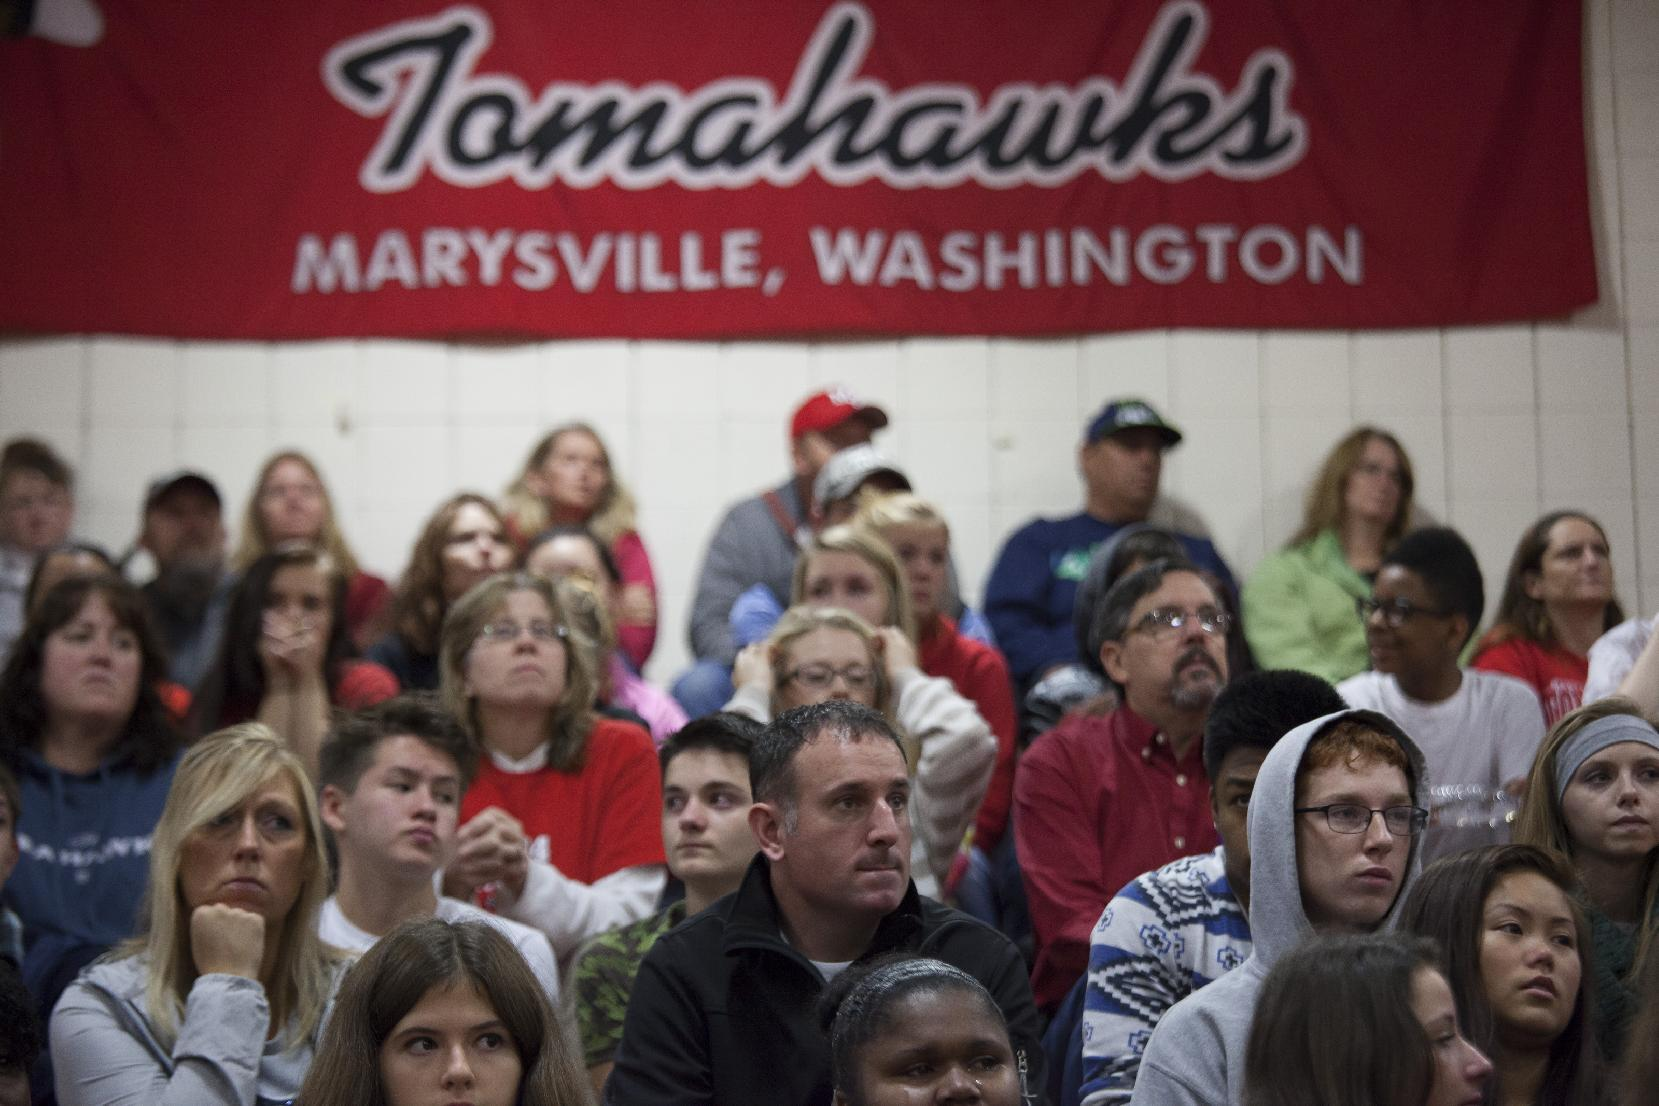 Members of the community and students grieve during a gathering at Marysville-Pilchuck High School on October 26, 2014 in Marysville, Washington (AFP Photo/David Ryder)